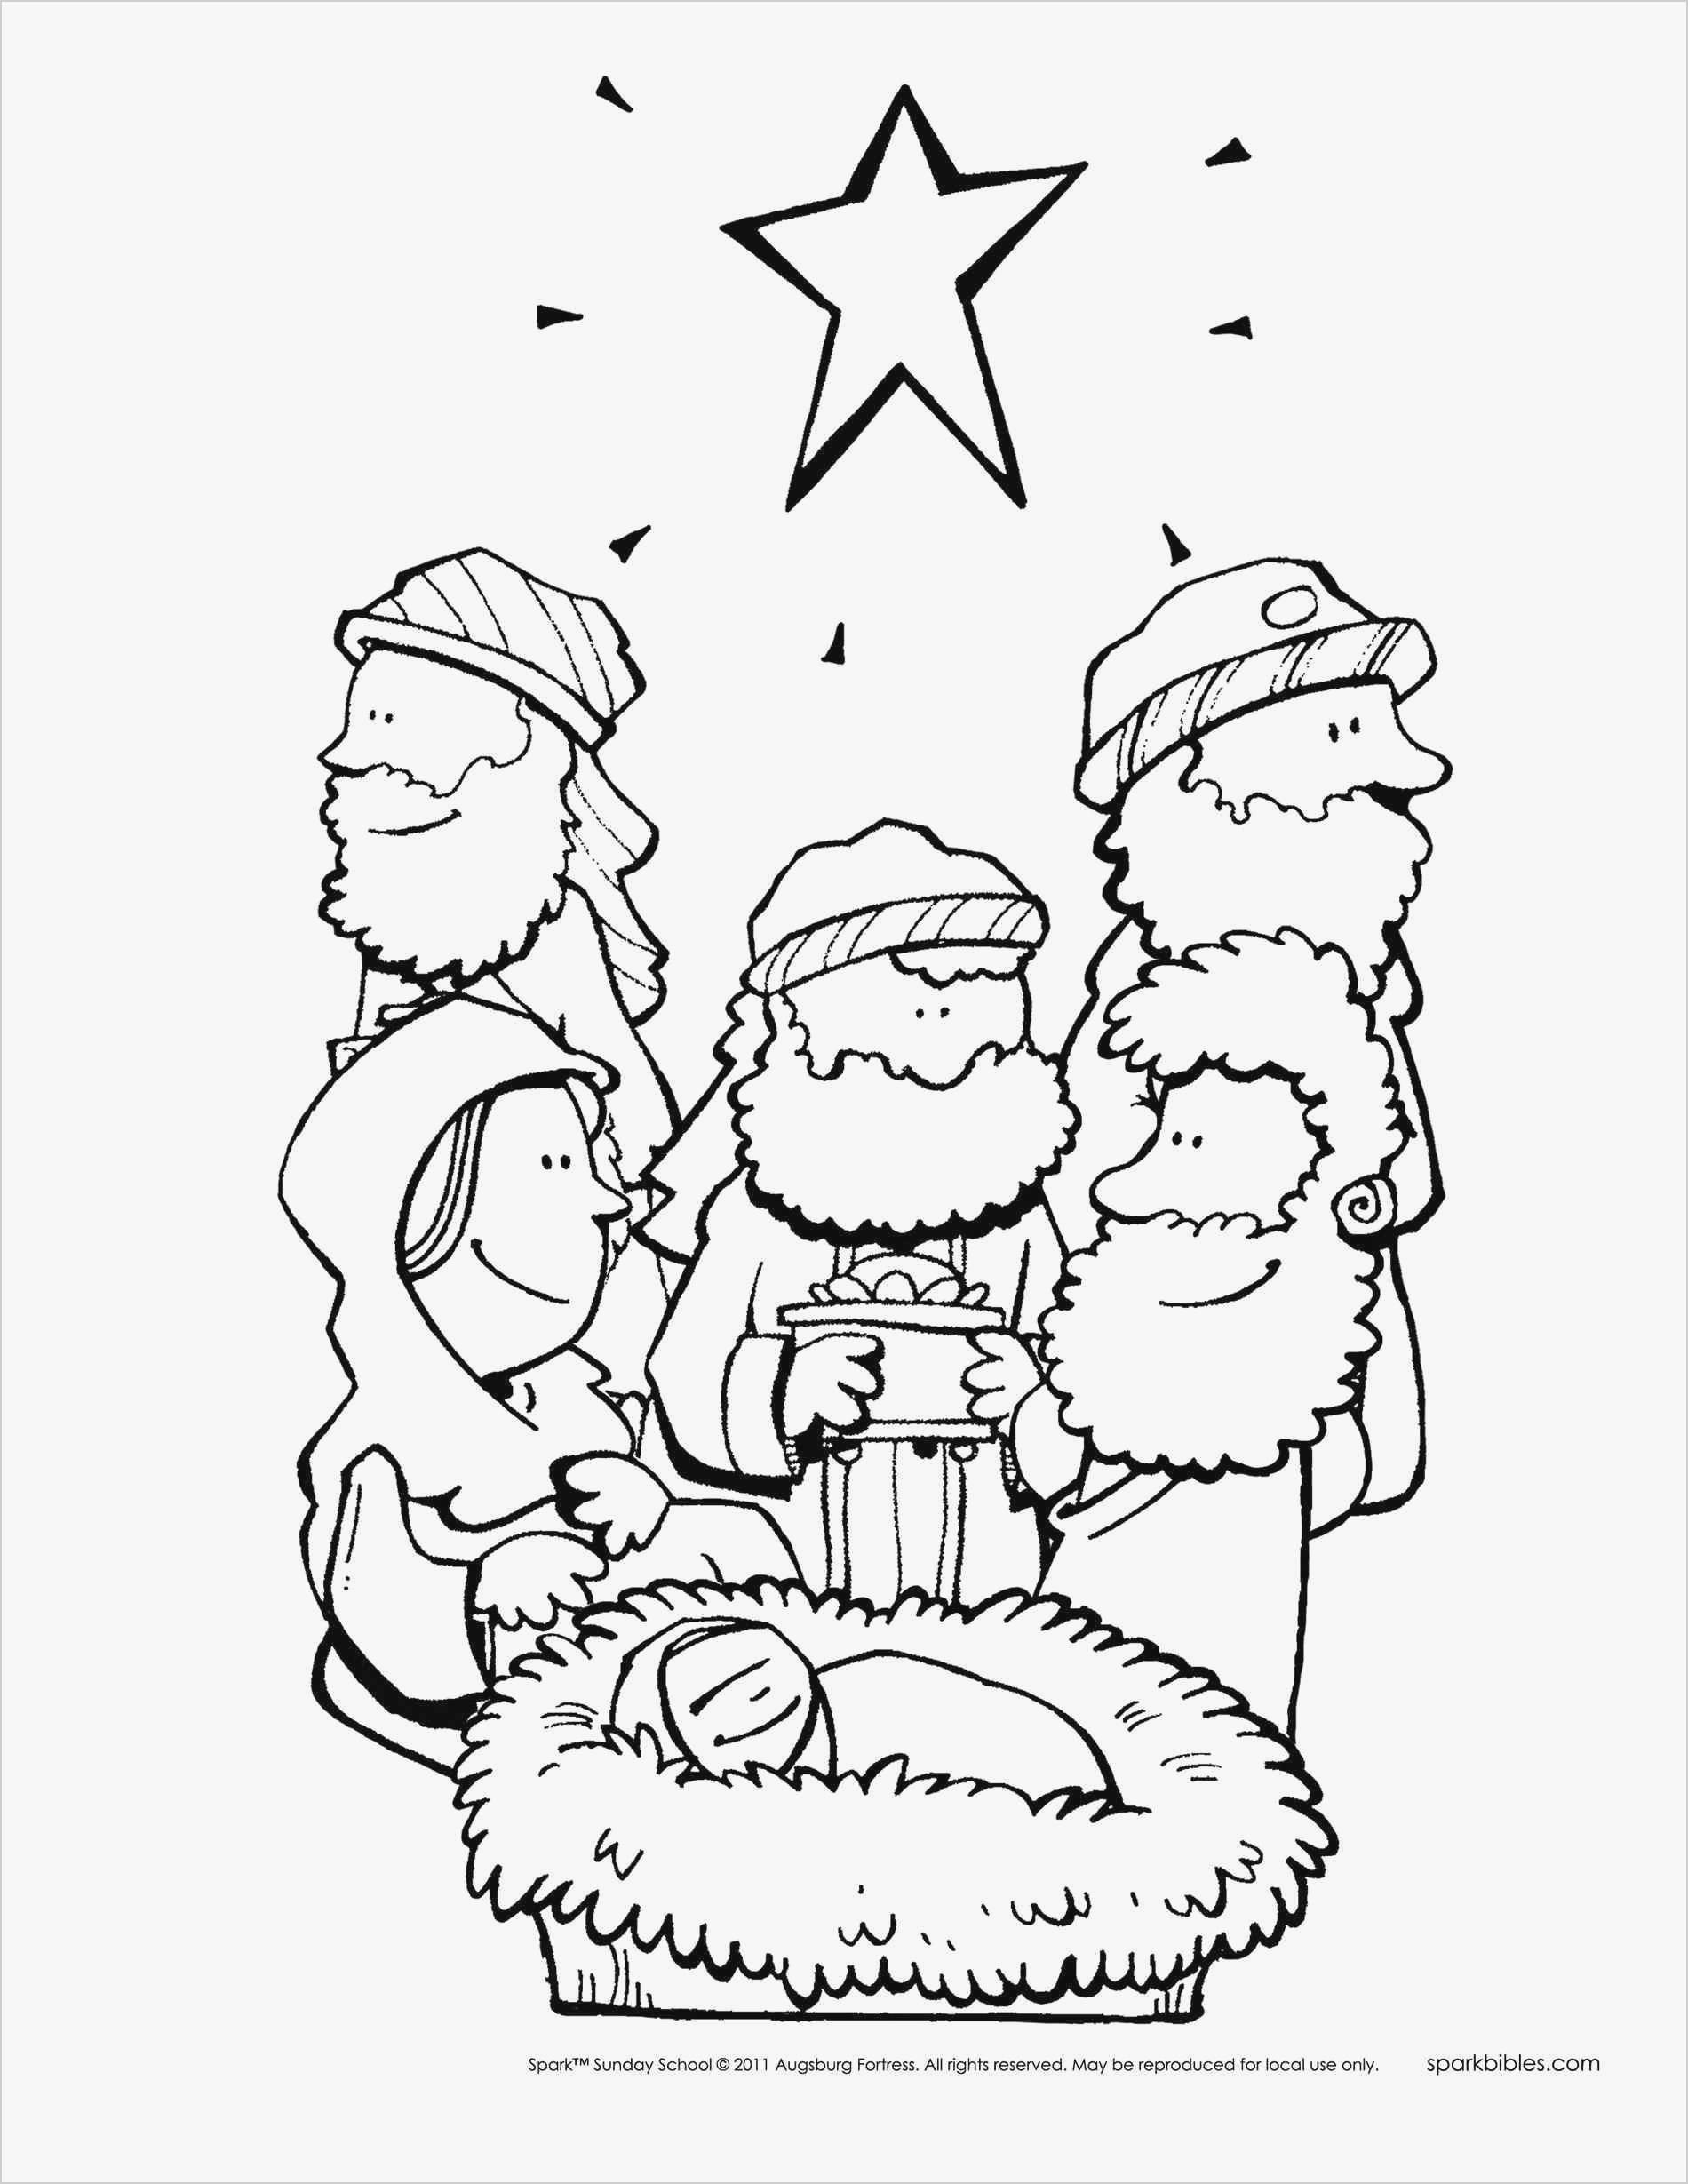 Barbie Halloween Coloring Pages Coloring Pages Free Printable Christmas Coloring Pages Nickelodeon